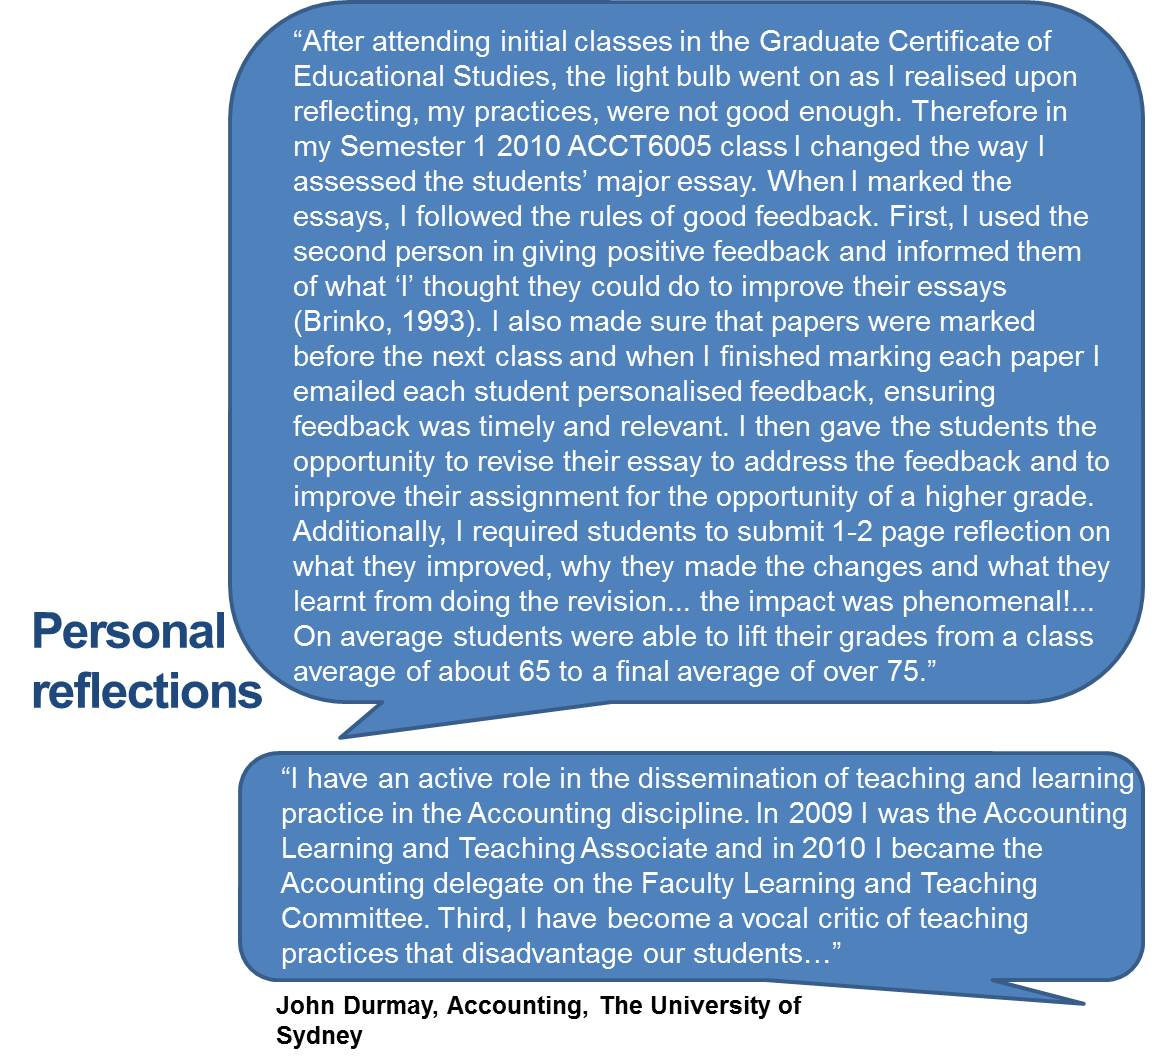 """After attending initial classes in the Graduate Certificate of Educational Studies, the light bulb went on as I realised upon reflecting, my practices, were not good enough. Therefore in my Semester 1 2010 ACCT6005 class I changed the way I assessed the students' major essay. When I marked the essays, I followed the rules of good feedback. First, I used the second person in giving positive feedback and informed them of what 'I' thought they could do to improve their essays (Brinko, 1993). I also made sure that papers were marked before the next class and when I finished marking each paper I emailed each student personalised feedback, ensuring feedback was timely and relevant. I then gave the students the opportunity to revise their essay to address the feedback and to improve their assignment for the opportunity of a higher grade. Additionally, I required students to submit 1-2 page reflection on what they improved, why they made the changes and what they learnt from doing the revision... the impact was phenomenal!... On average students were able to lift their grades from a class average of about 65 to a final average of over 75."" ""I have an active role in the dissemination of teaching and learning practice in the Accounting discipline. In 2009 I was the Accounting Learning and Teaching Associate and in 2010 I became the Accounting delegate on the Faculty Learning and Teaching Committee. Third, I have become a vocal critic of teaching practices that disadvantage our students…"""